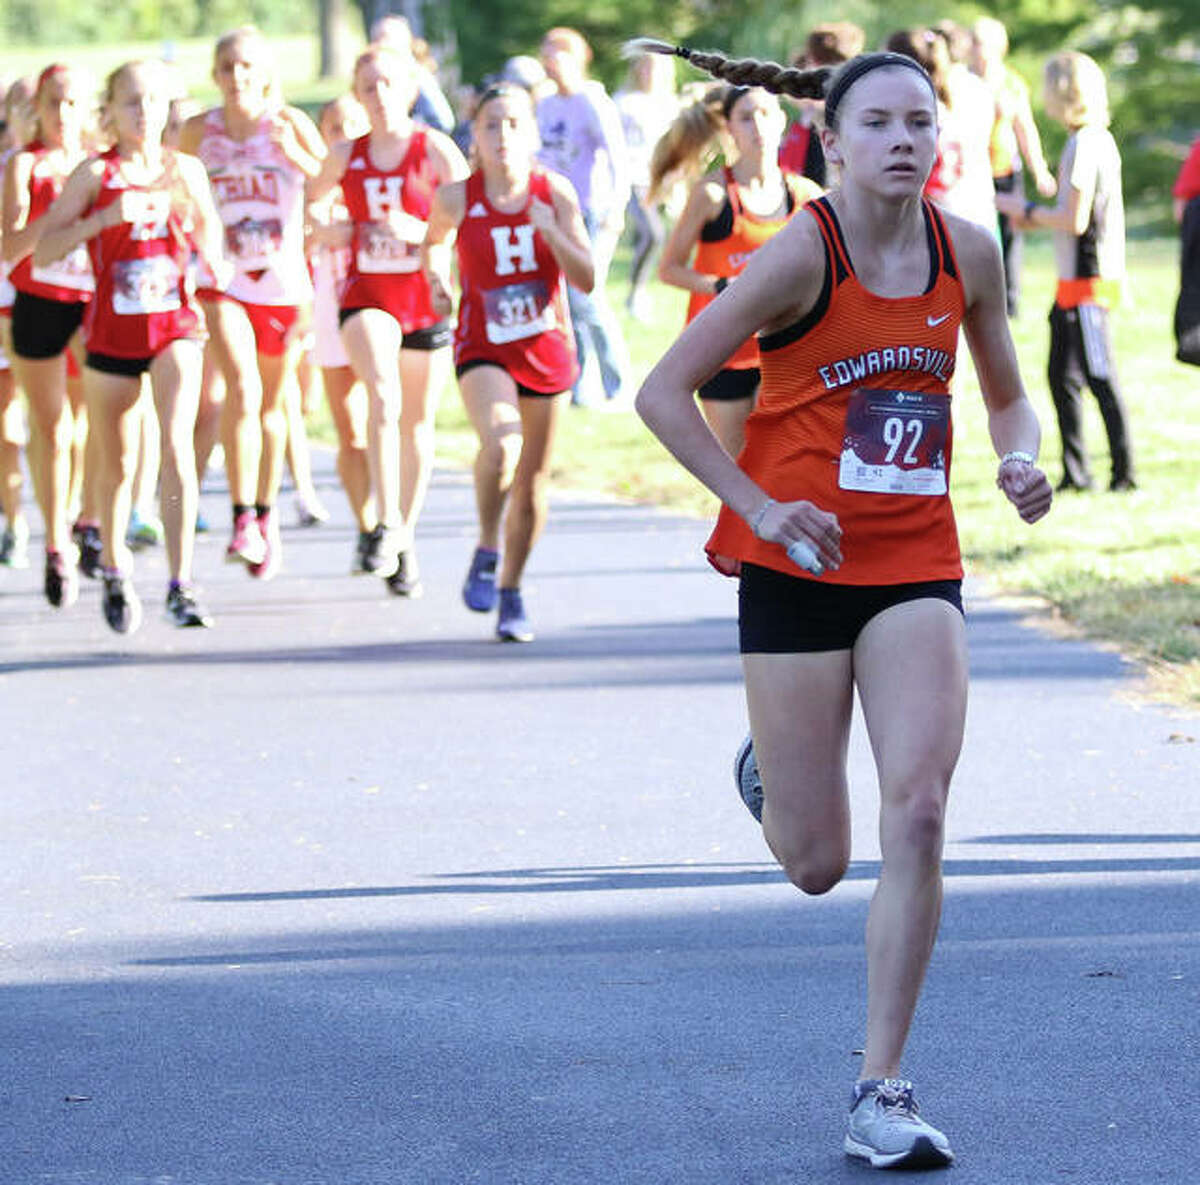 Edwardsville's Riley Knoyle pulls away from the pack on her way to a 44-second victory in the Madison County Large-Schools Meet last season at Belk Park in Wood River.